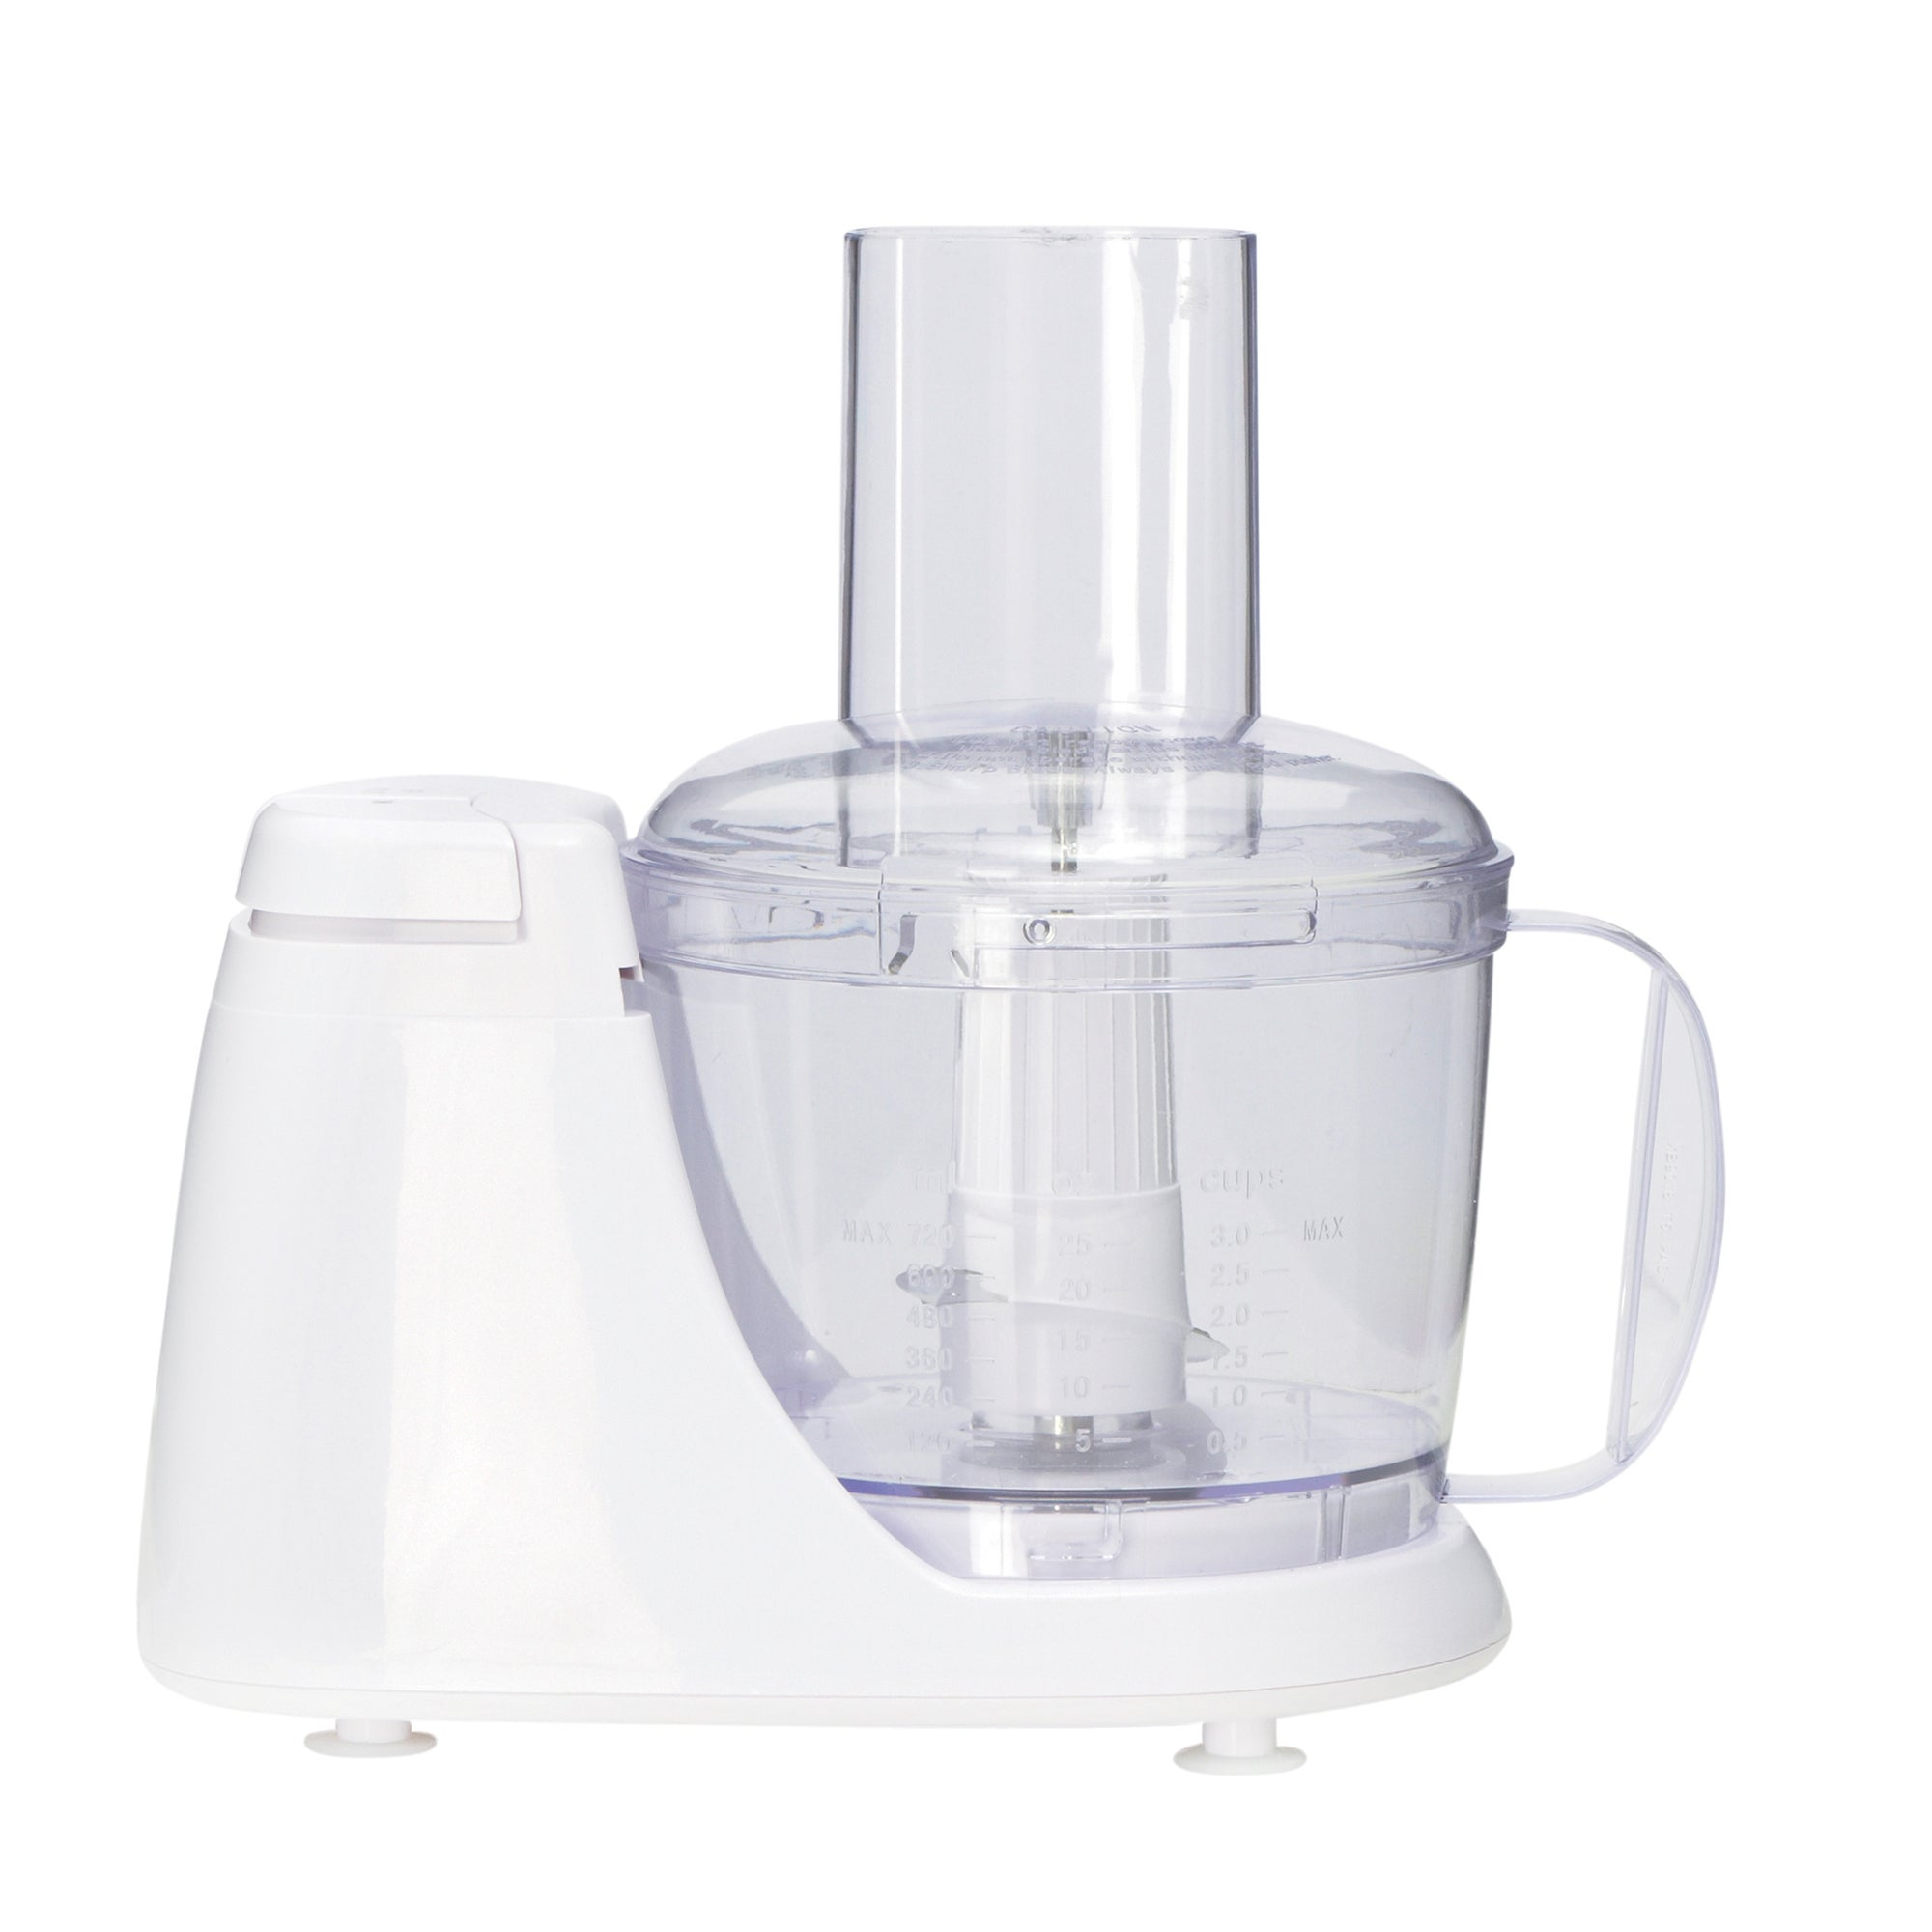 White Mini Food Processor